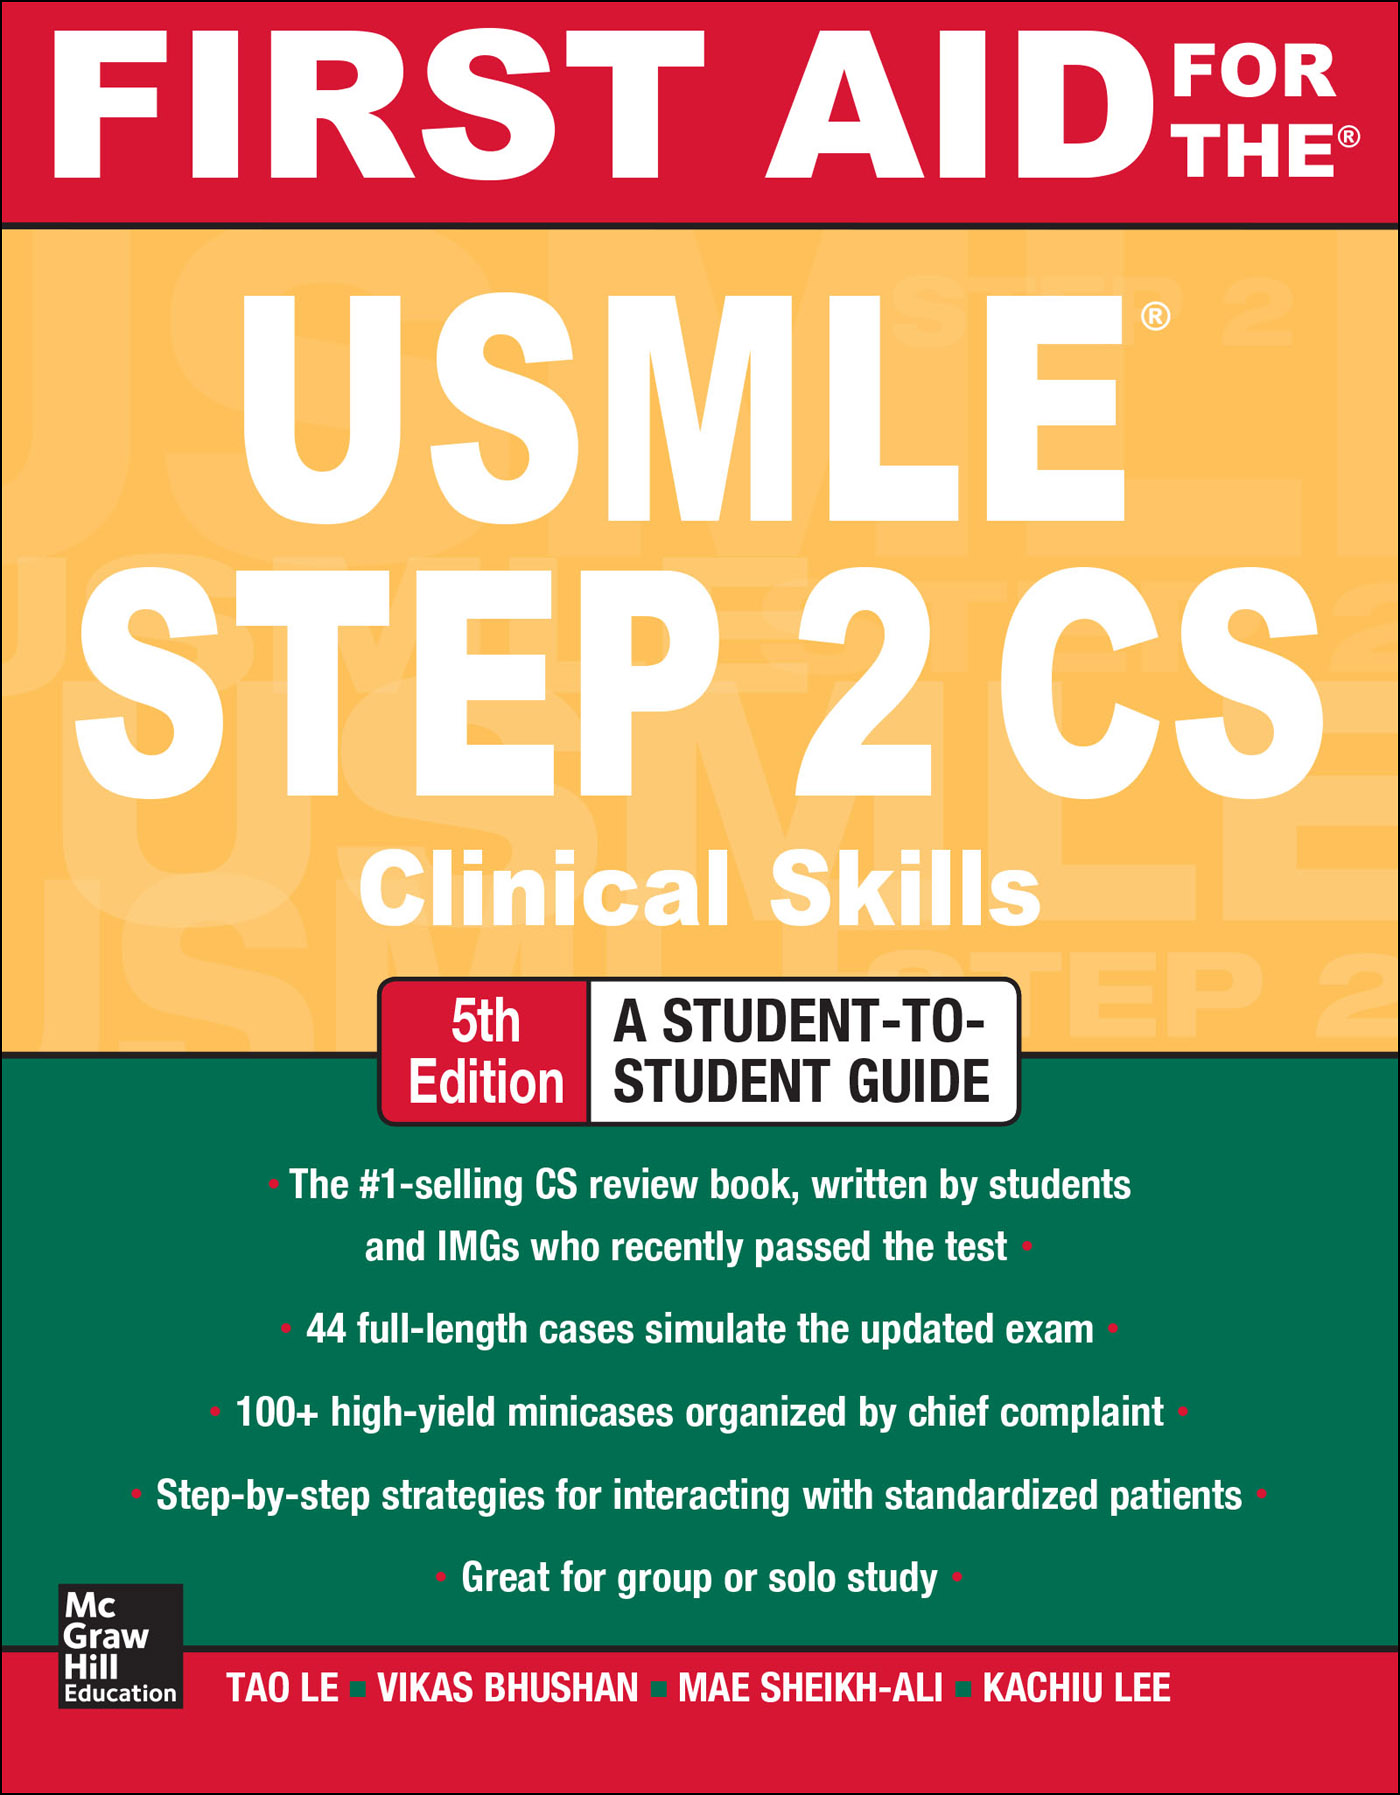 First Aid for the USMLE Step 2 CS 5th Edition Pdf Free Download